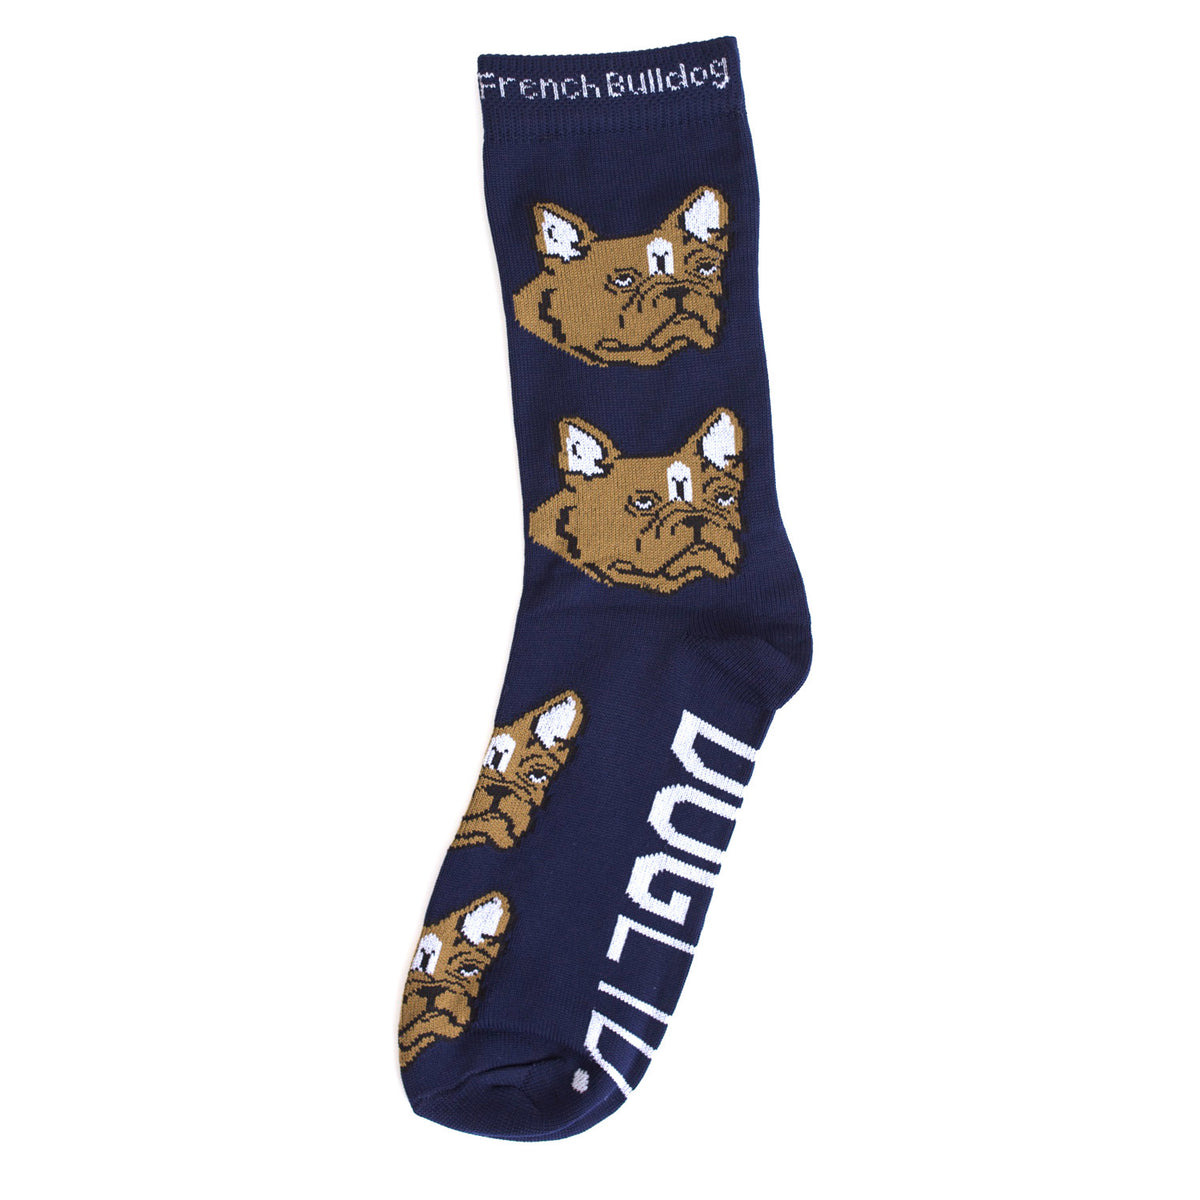 French Bulldog Sock